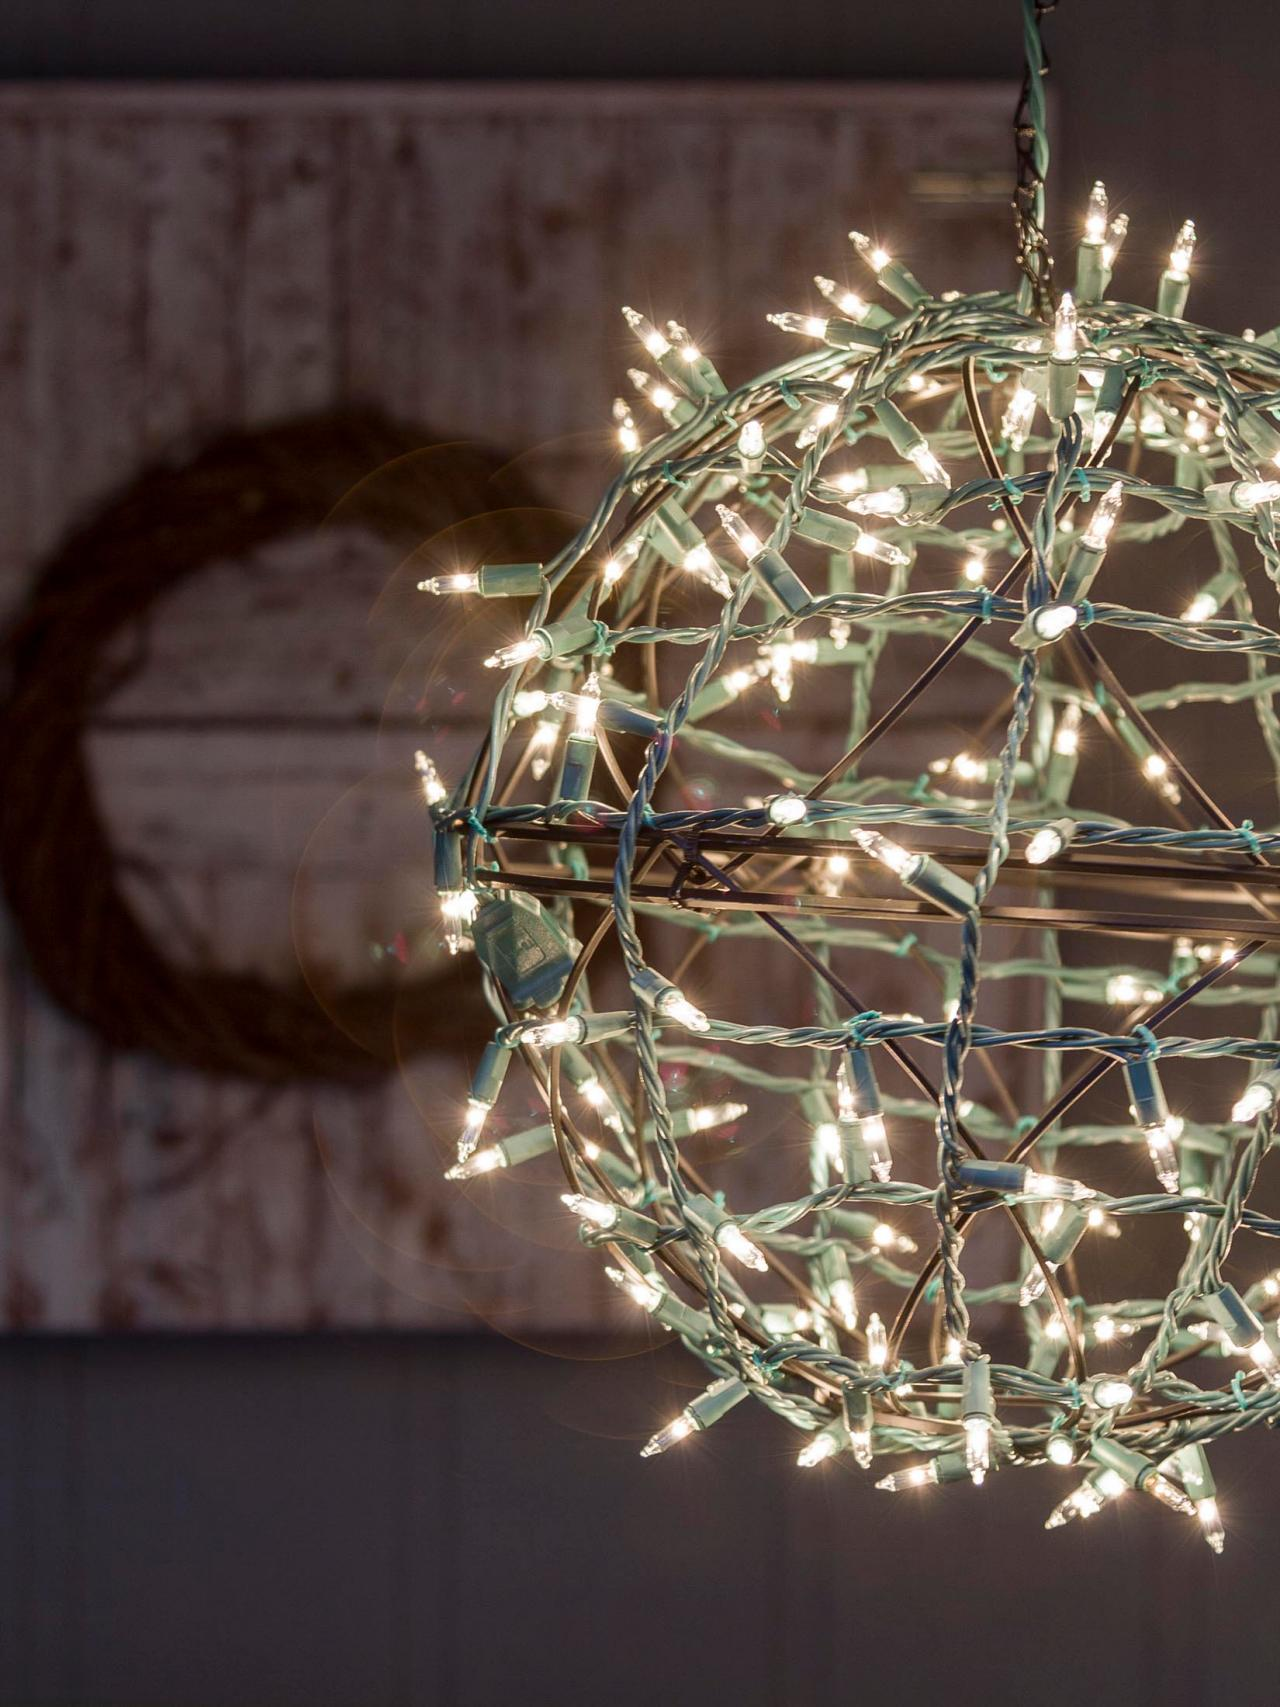 Upcycled Light Balls For Your Deck Or Porch Diy Network